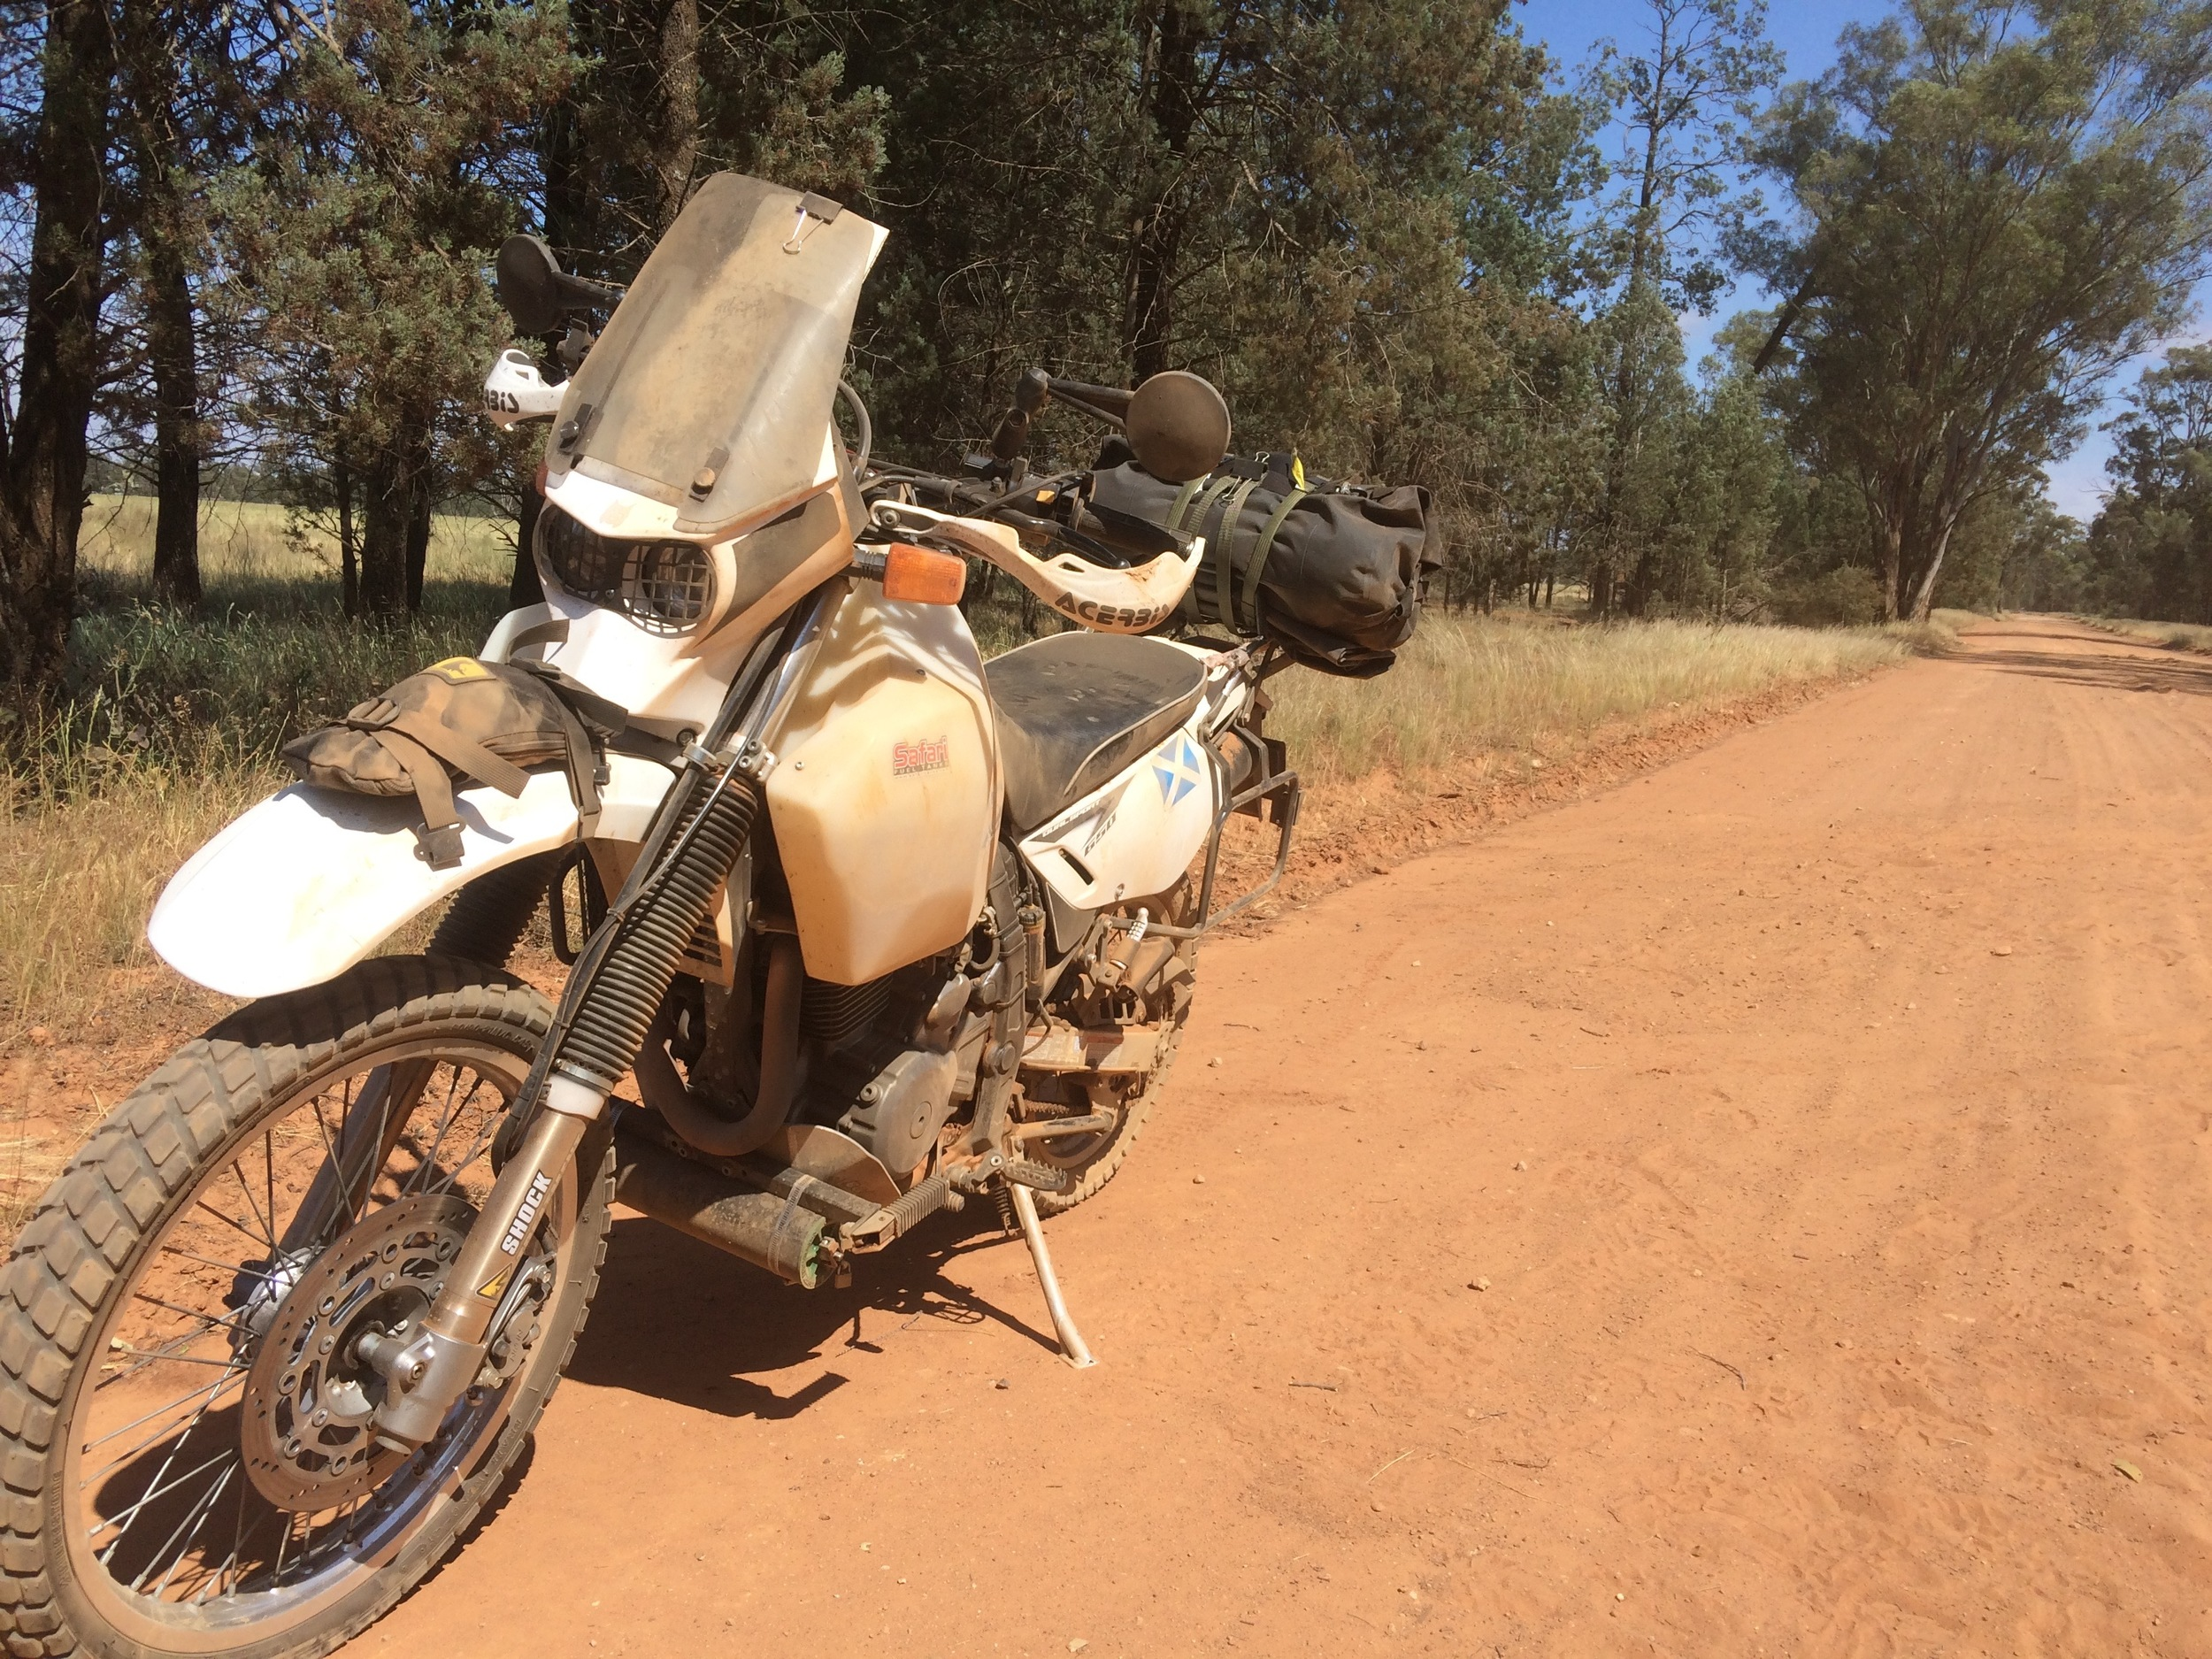 On our way back from the Horizons Unlimited meeting, South-Central NSW